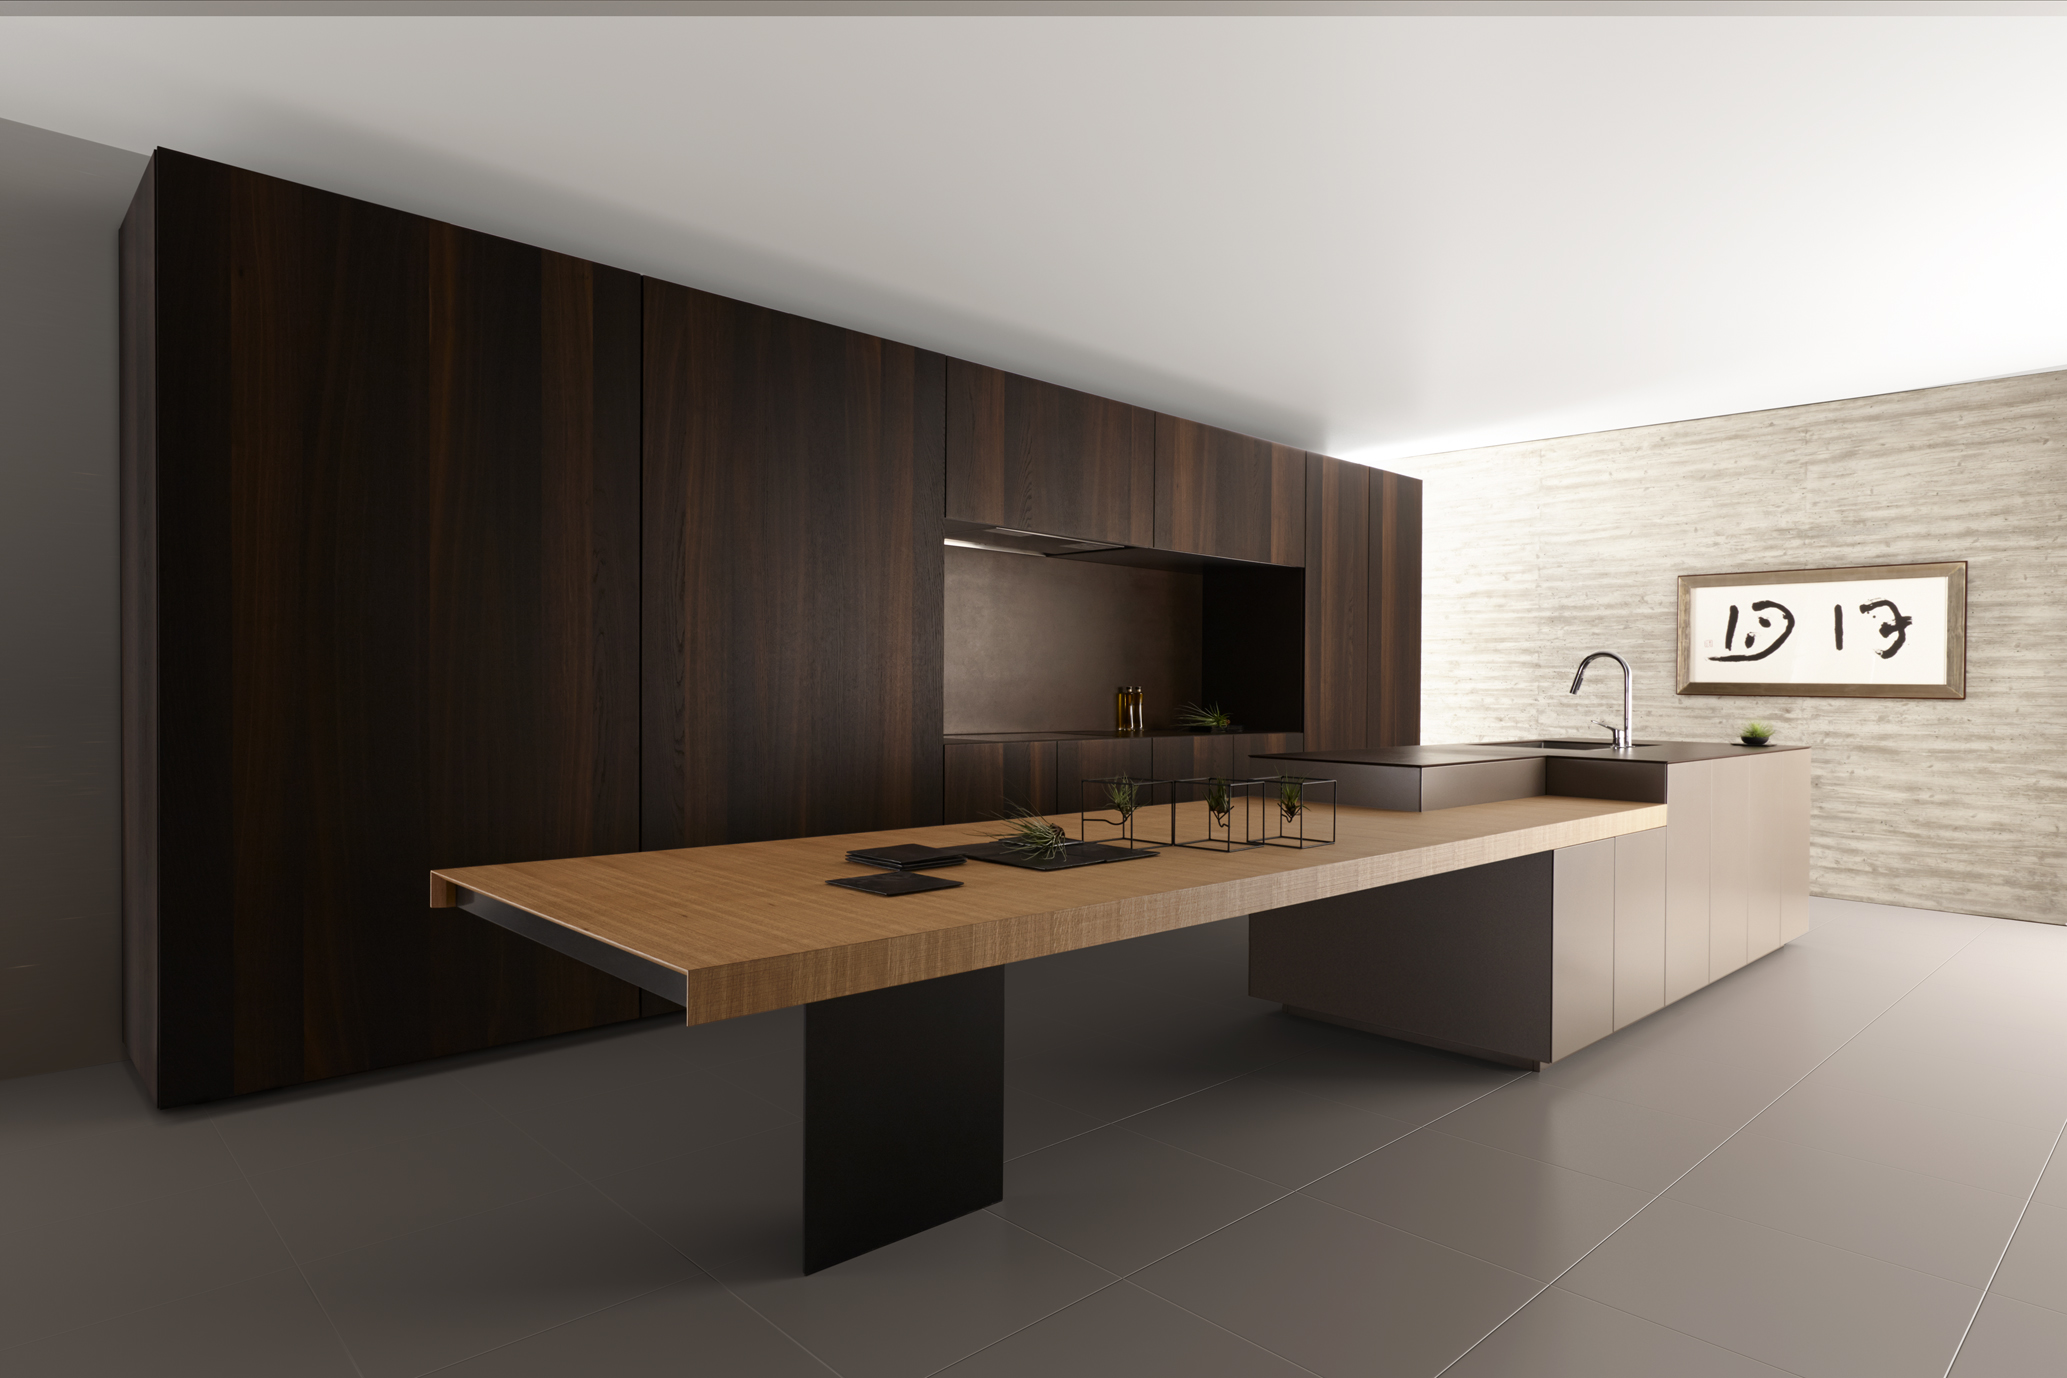 cosentino nederland japans minimalisme in de keuken met dekton. Black Bedroom Furniture Sets. Home Design Ideas